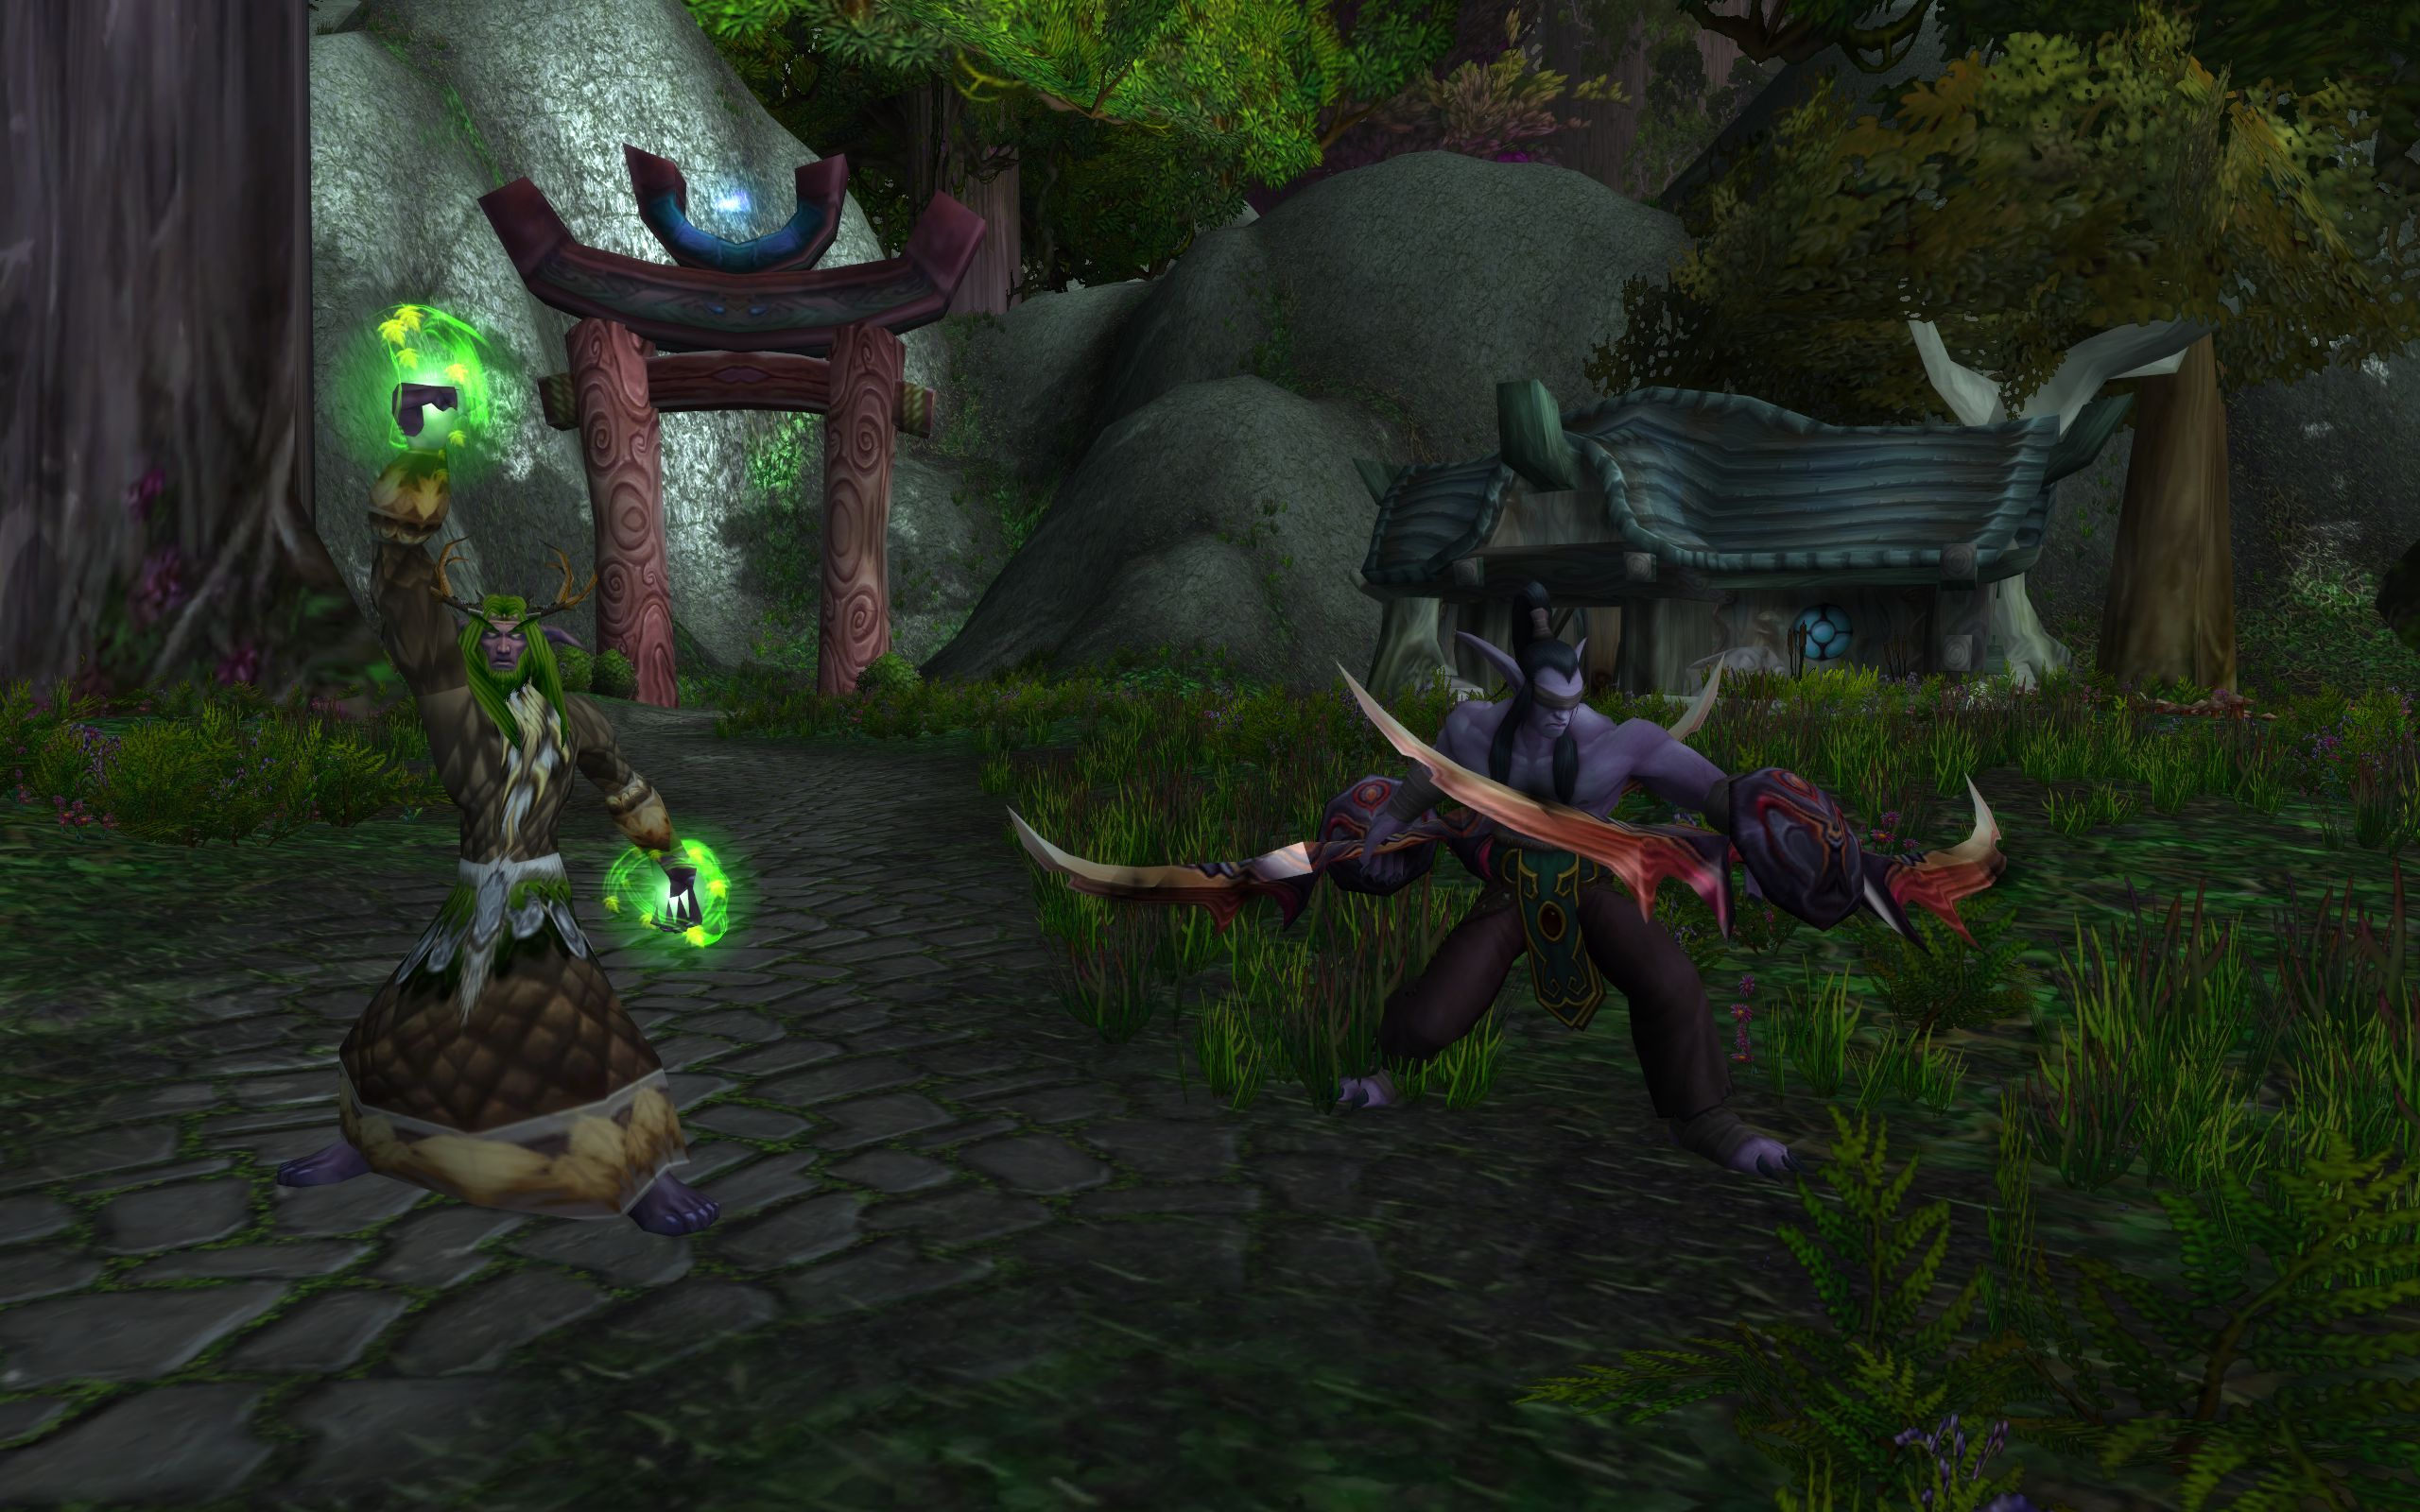 World of warcraft cataclysm nude patch smut streaming